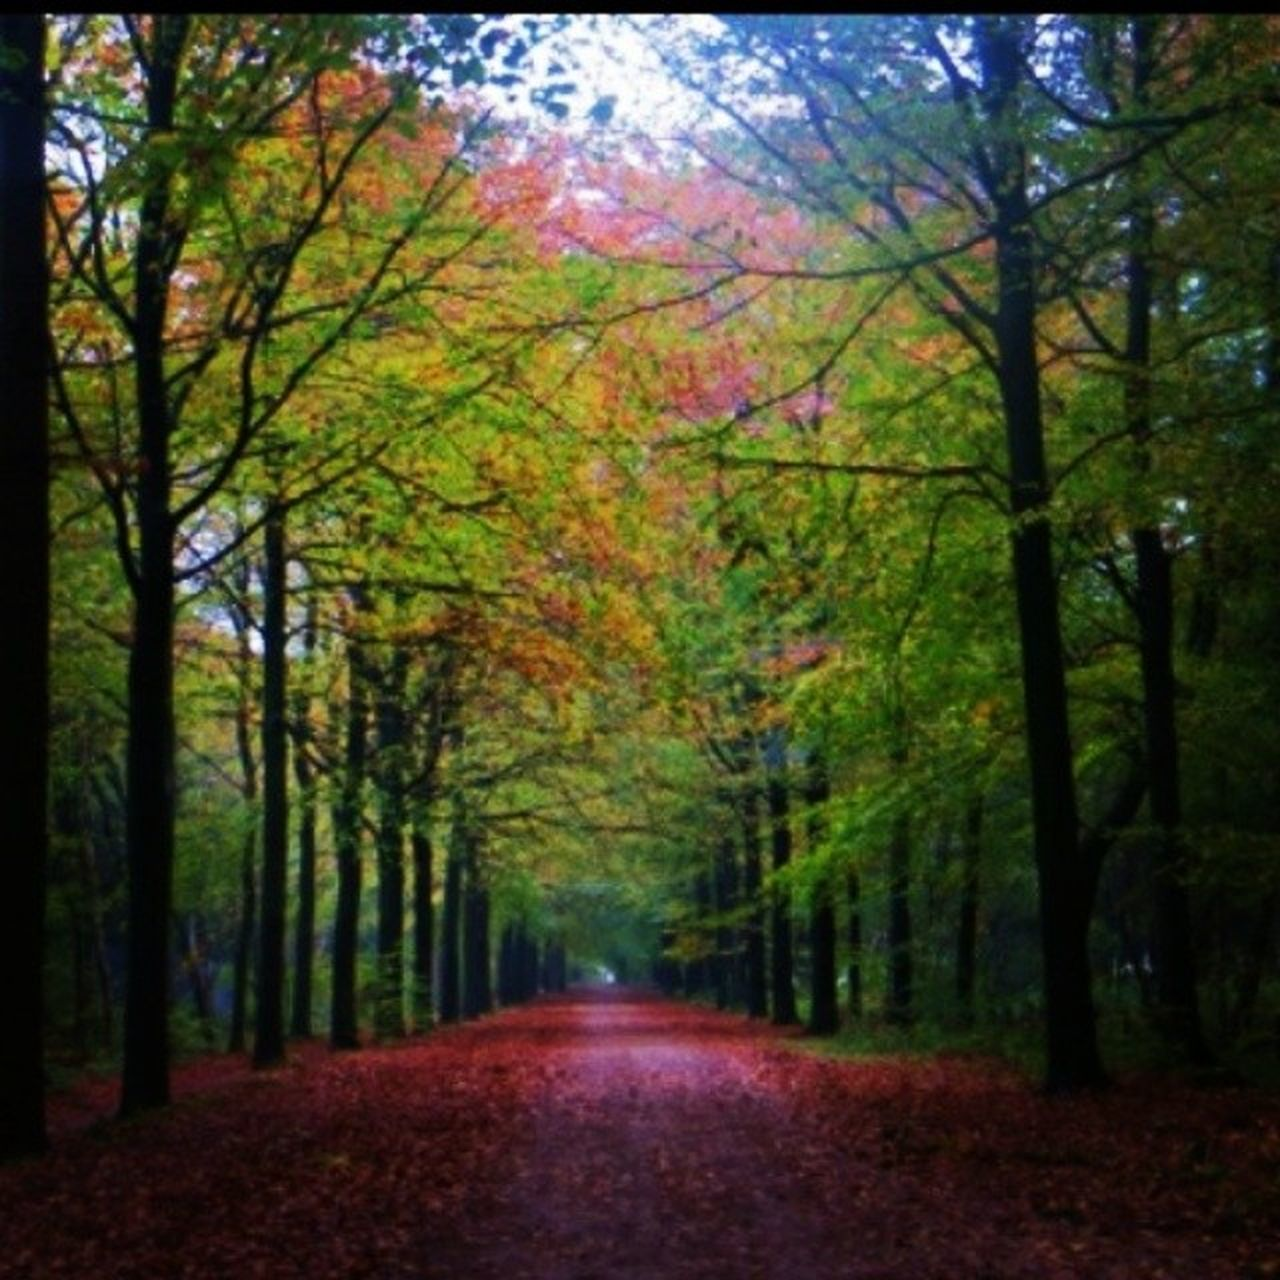 Forest Fall Autumn Colour Winter Tree Netherlands Insta_netherlands Instamood Leaves Forestbed Walkingtrail Desserted Peaceful